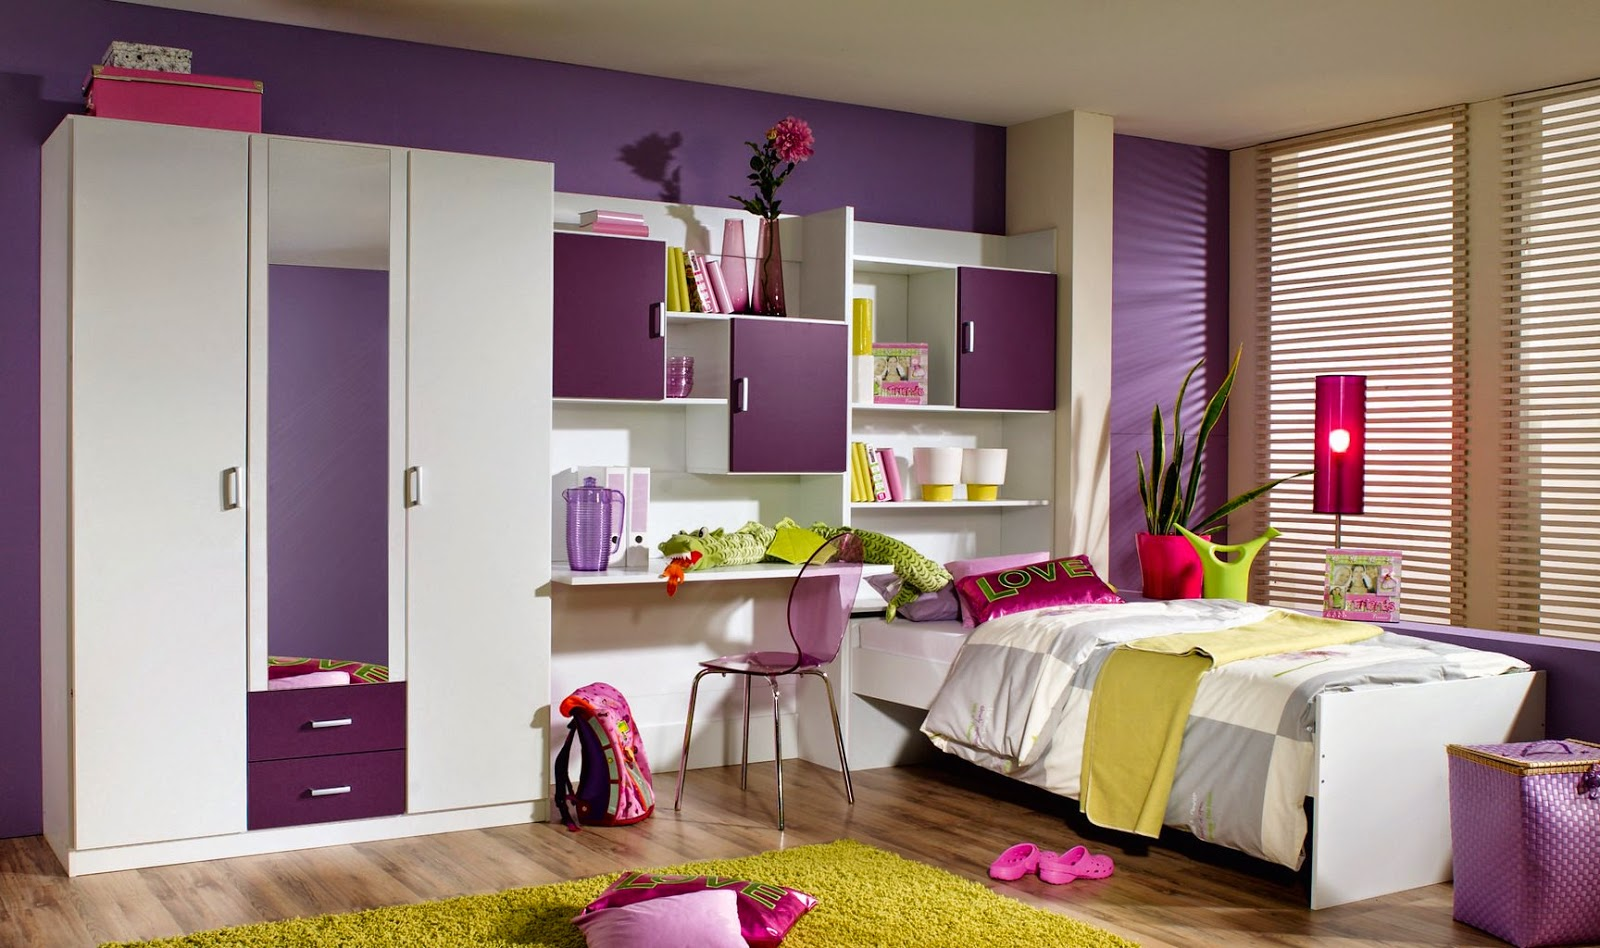 Chambre ado fille for Idee de decoration de chambre